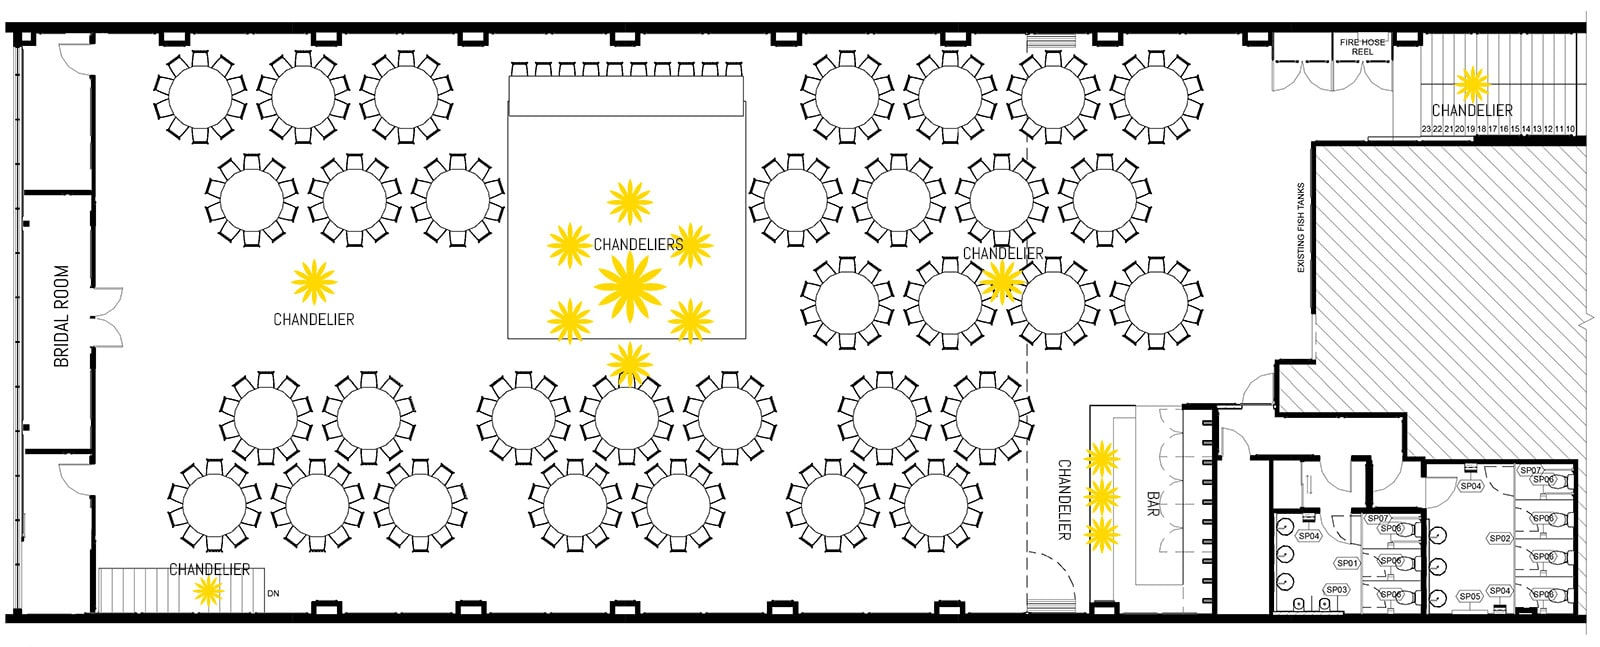 Floorplan of 320 pax (32 tables)